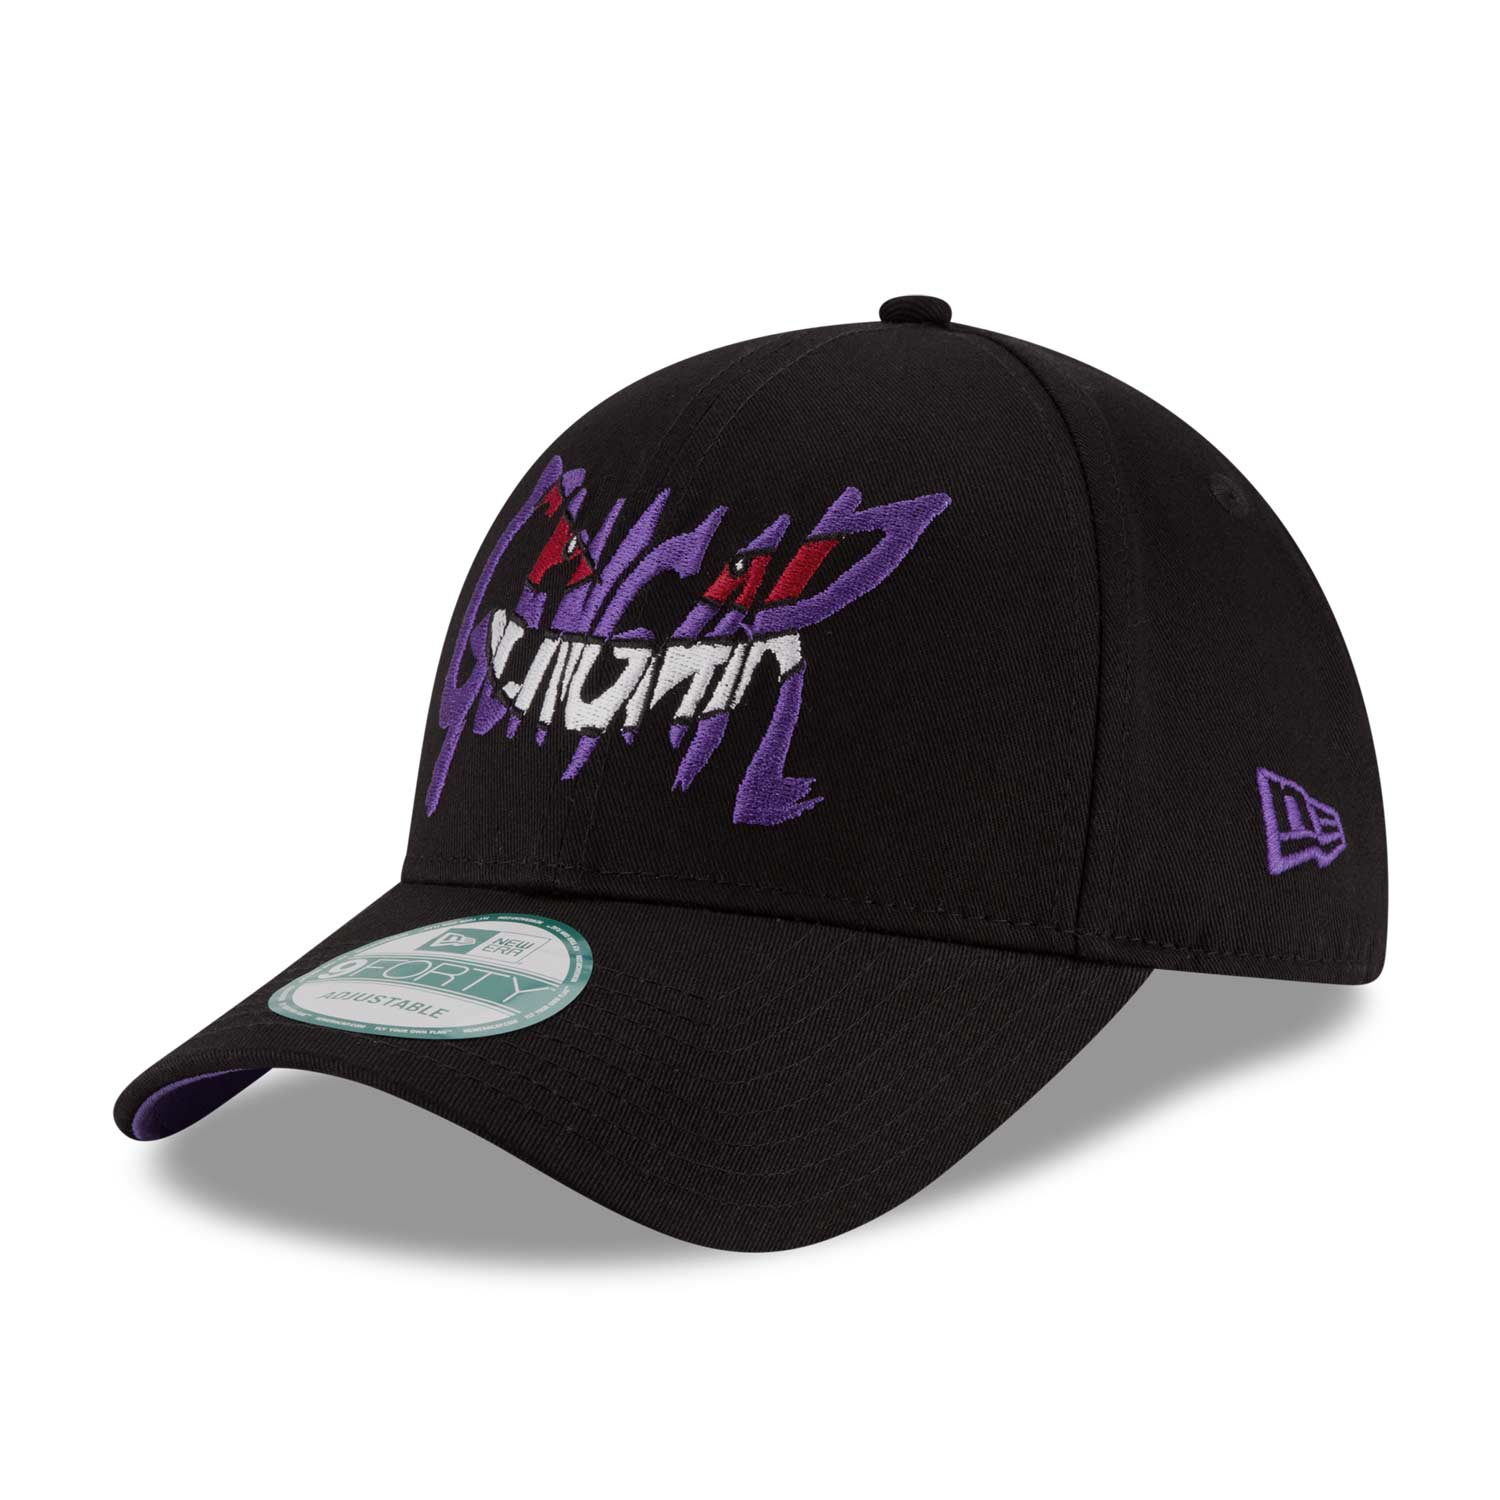 Image for Gengar Smirk 9FORTY Baseball Cap by New Era (One Size-Adult) 3e0a0558f8d